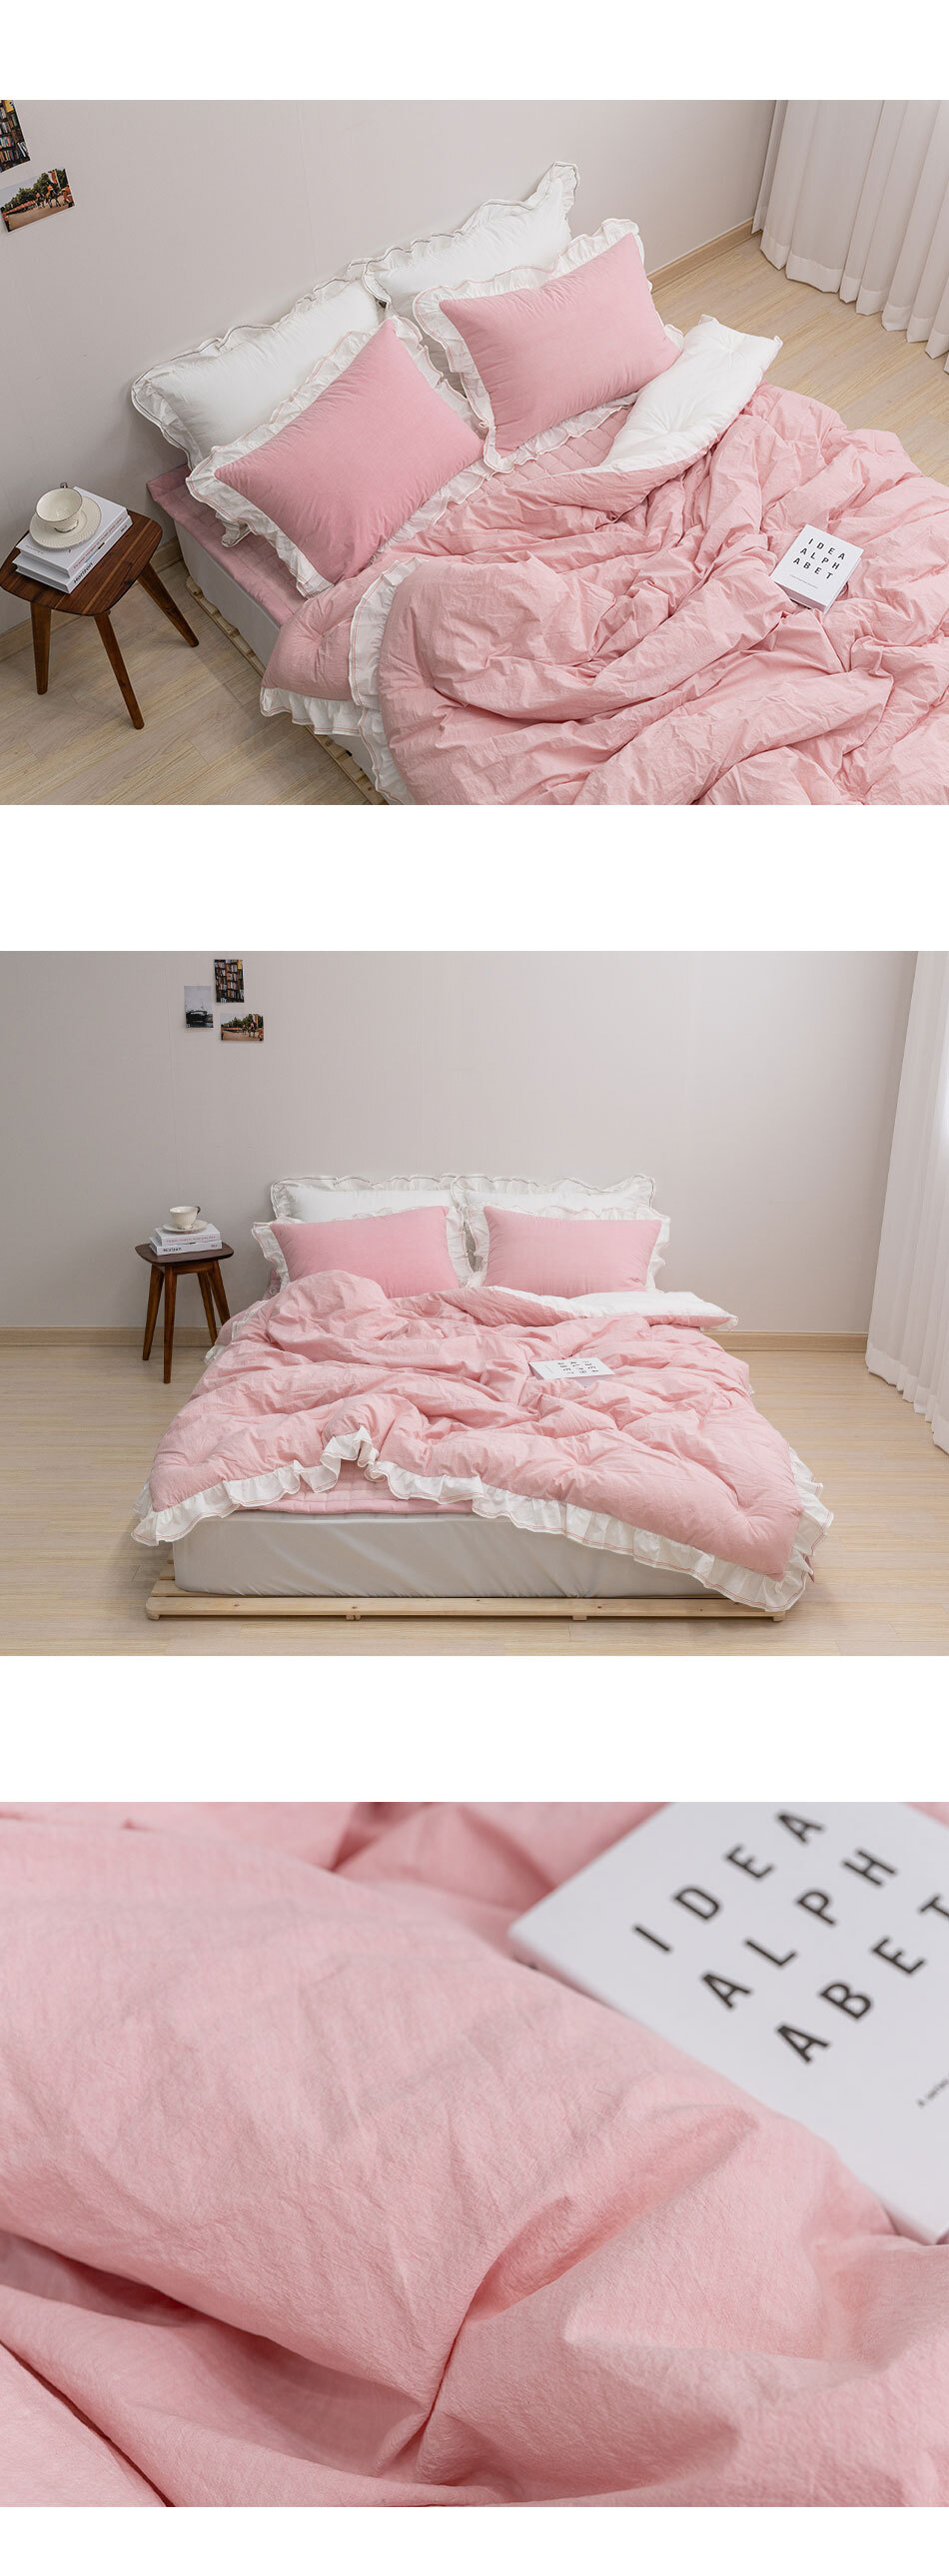 stay_bed_pink1.jpg